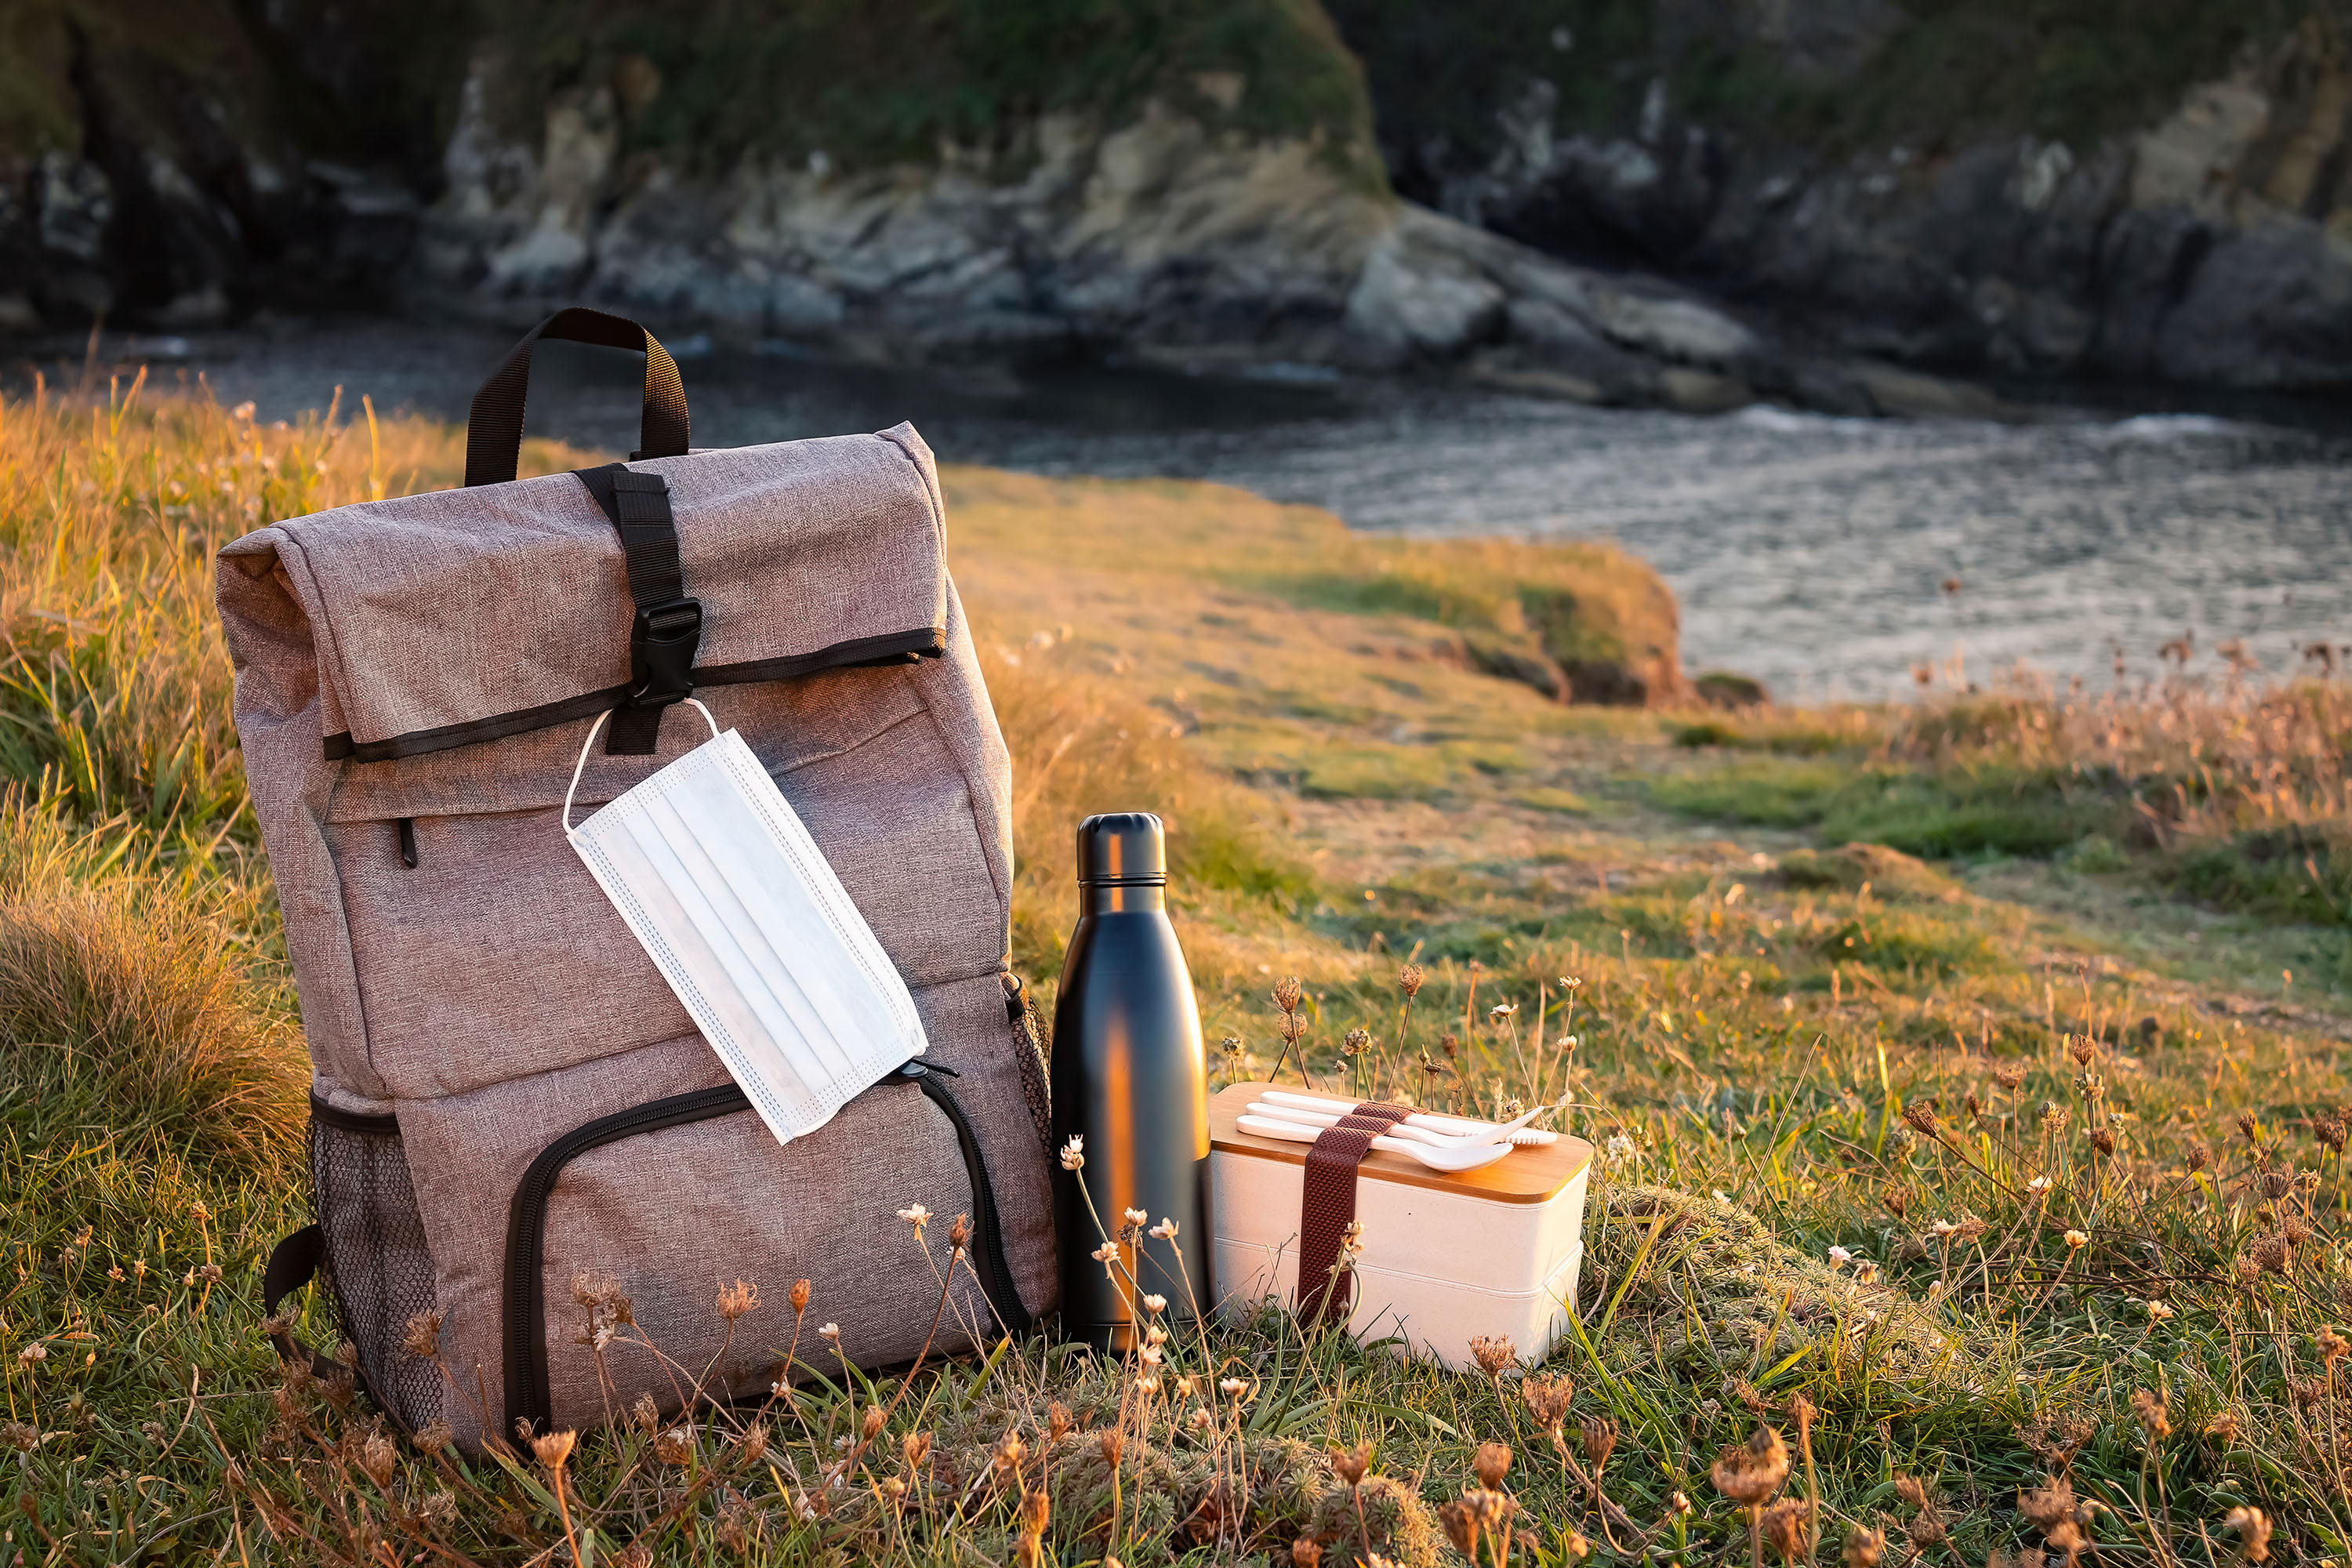 A hiking backpack, reuseable water bottle, and bento box in a meadow with a body of water in the background.